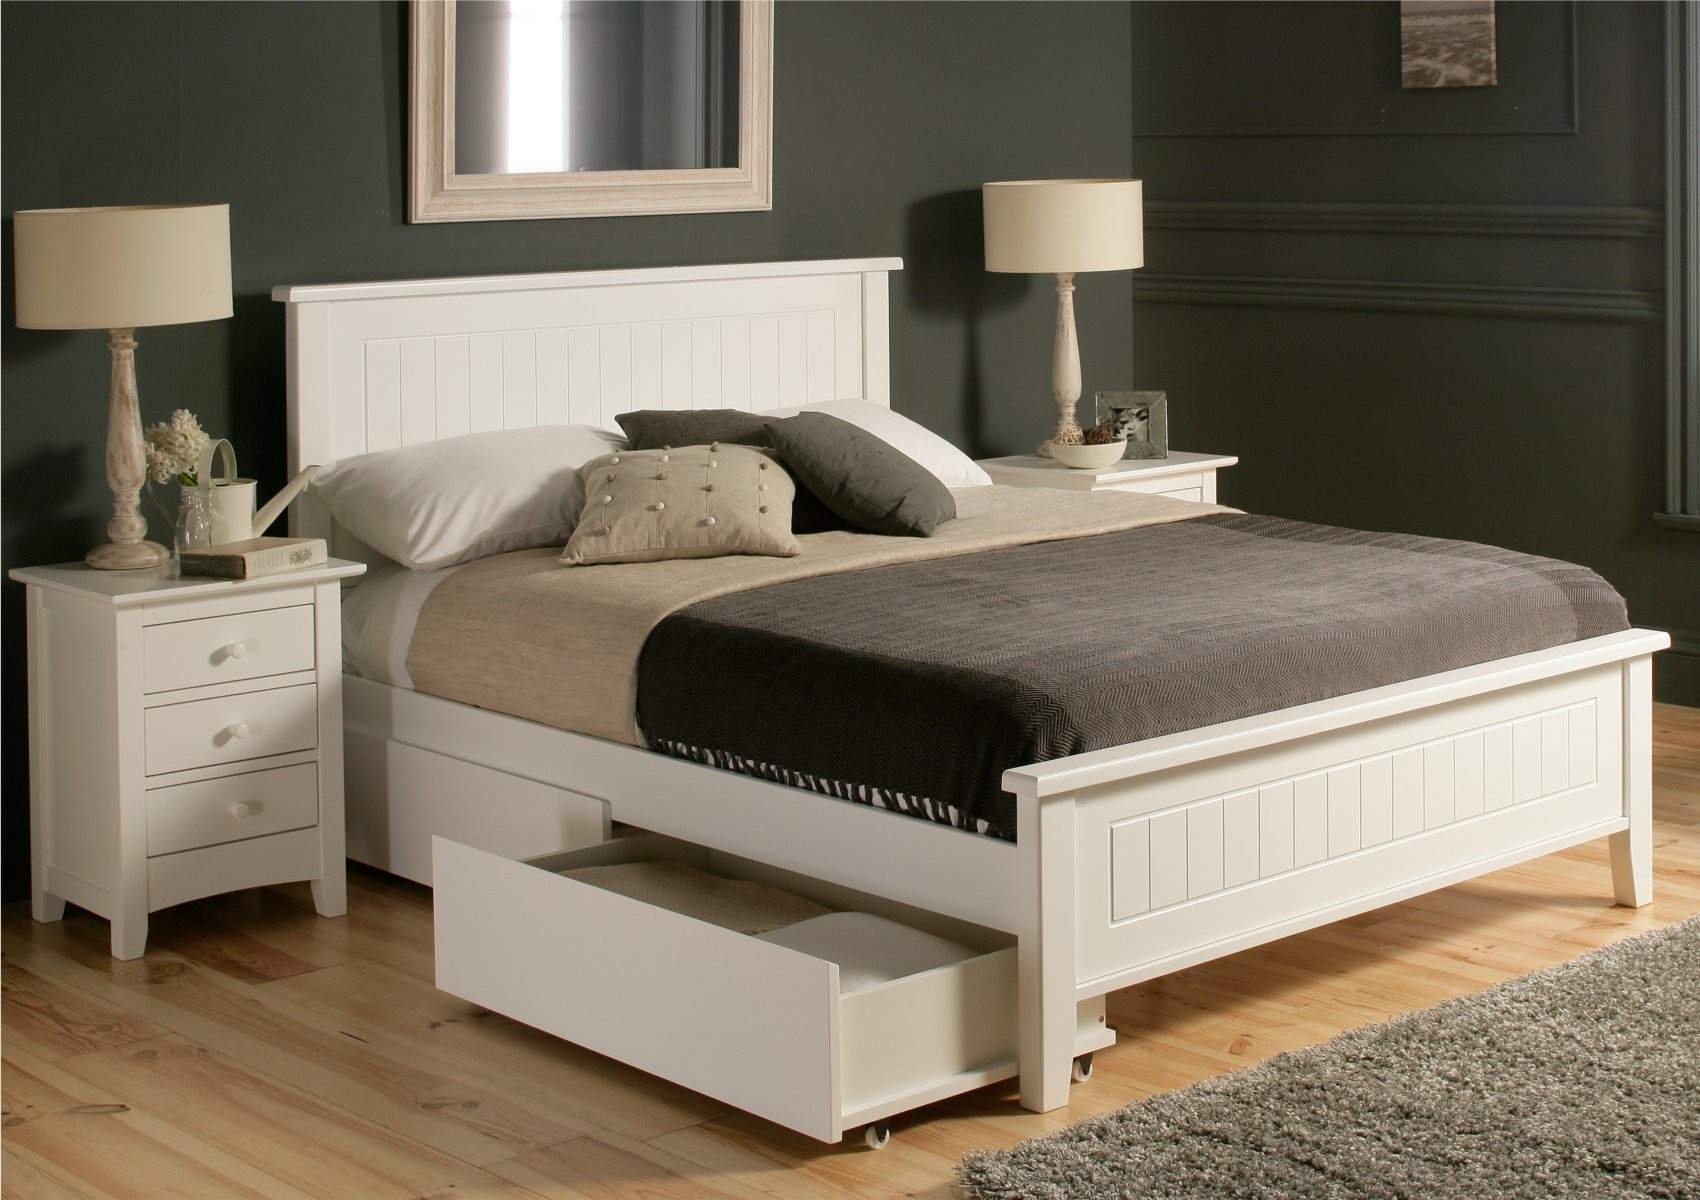 Permalink to Queen Bed Frame With Storage